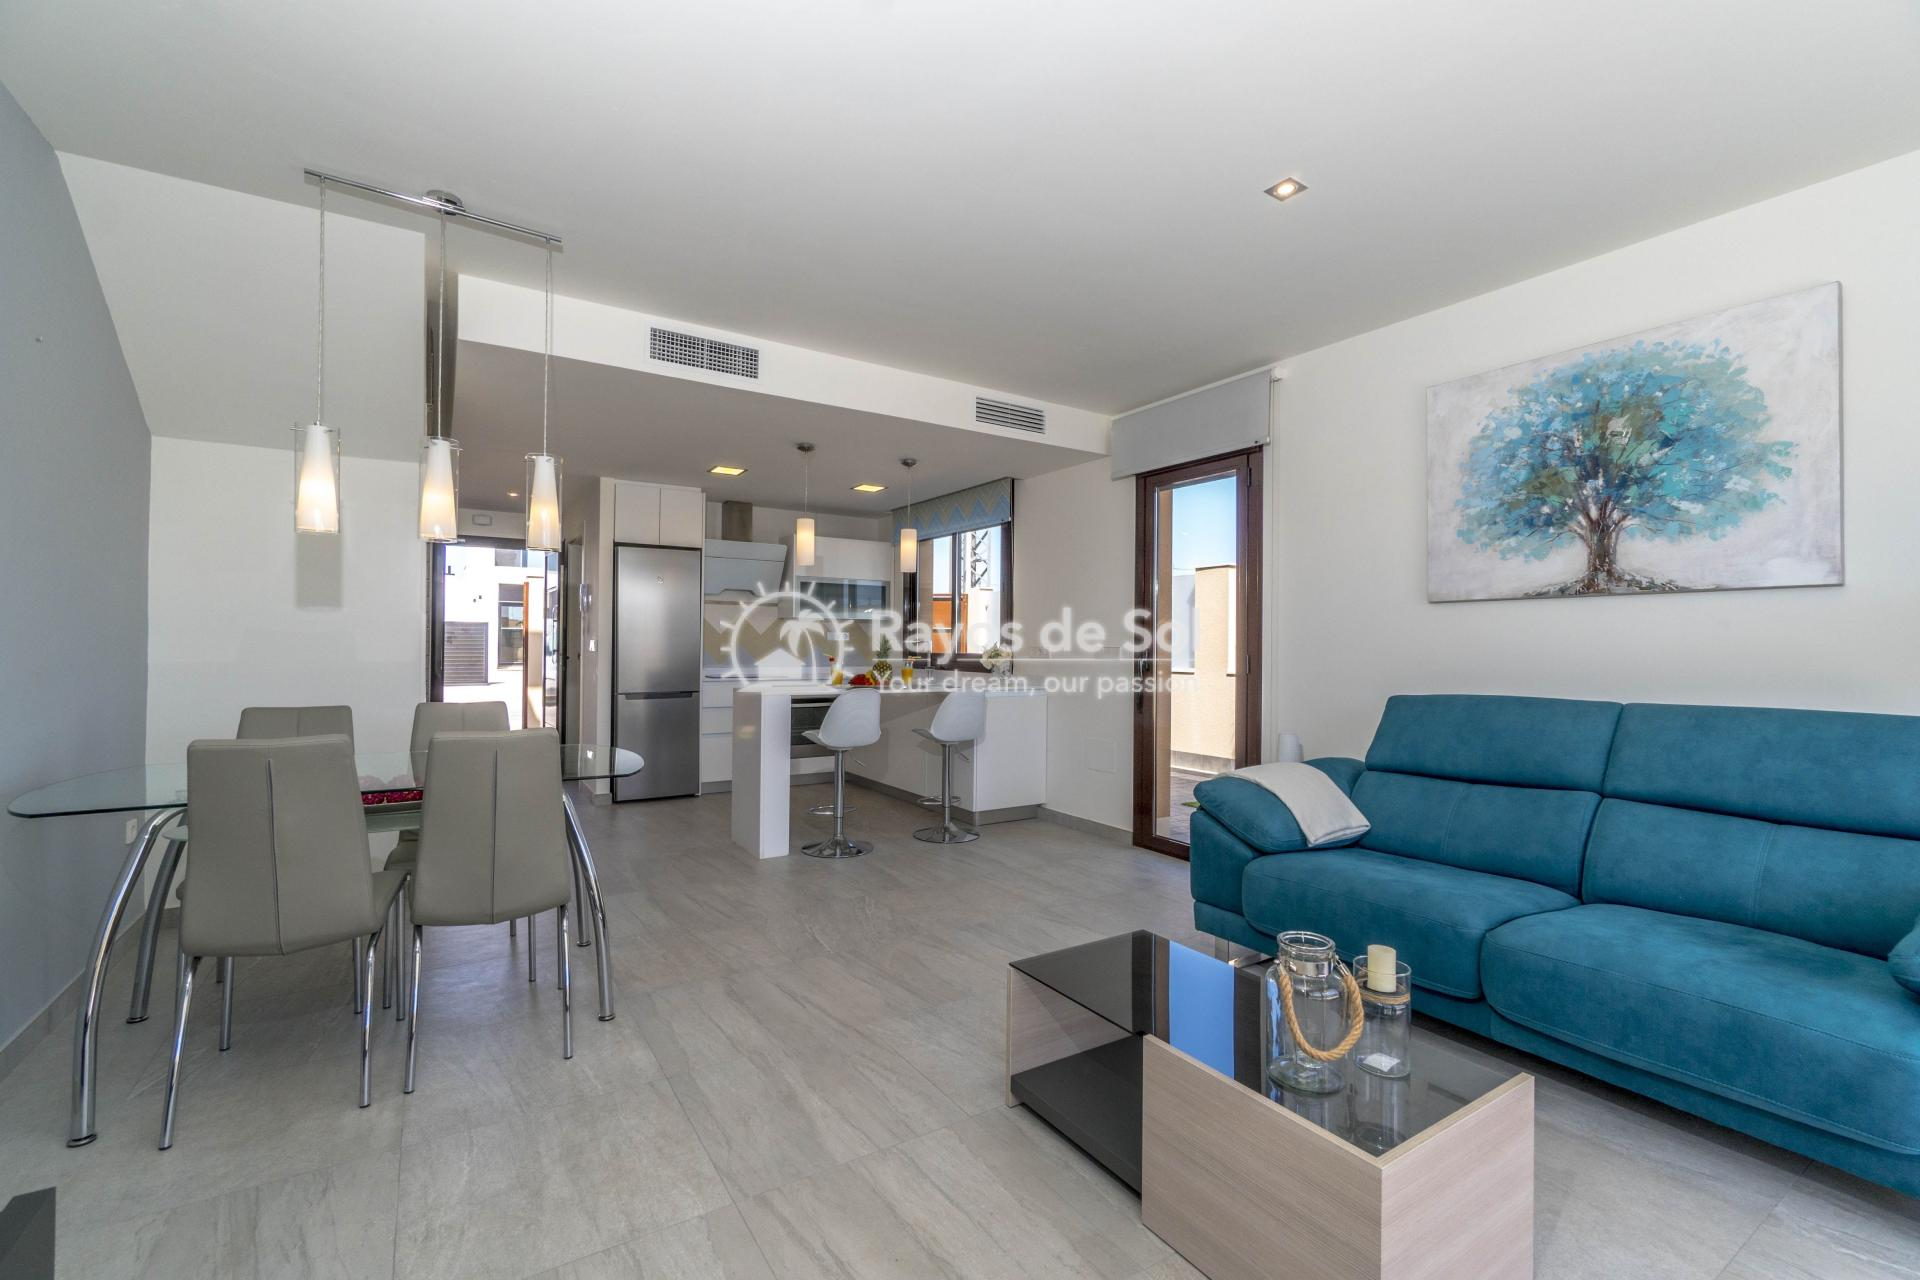 Detached villa  in San Pedro del Pinatar, Costa Cálida (Abedul villas) - 3